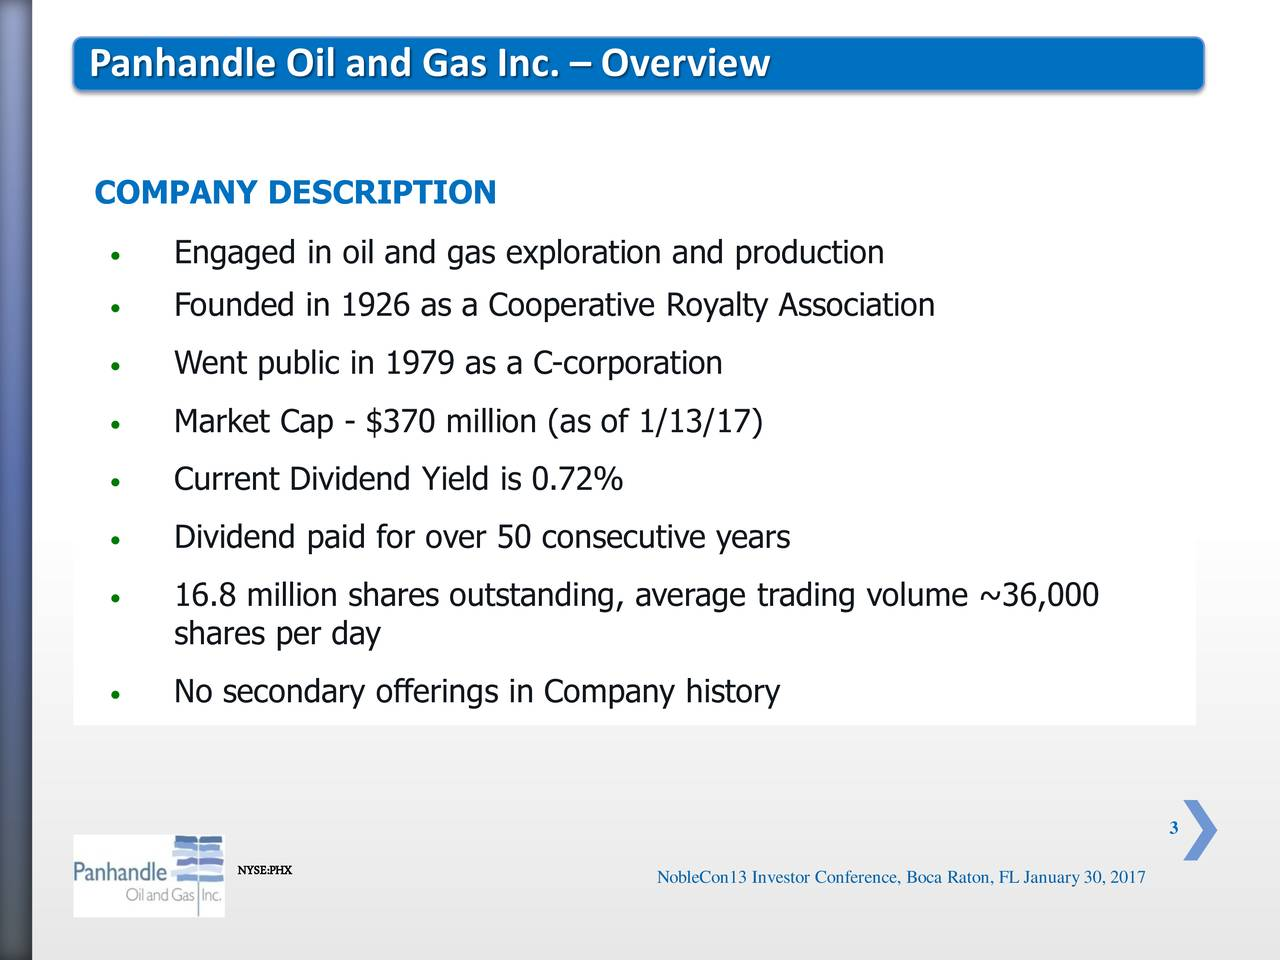 COMPANY DESCRIPTION Engaged in oil and gas exploration and production Founded in 1926 as a Cooperative Royalty Association Went public in 1979 as a C-corporation Market Cap - $370 million (as of 1/13/17) Current Dividend Yield is 0.72% Dividend paid for over 50 consecutive years 16.8 million shares outstanding, average trading volume ~36,000 shares per day No secondary offerings in Company history 3 NYSE:PHX NobleCon13 Investor Conference, Boca Raton, FL January30, 2017